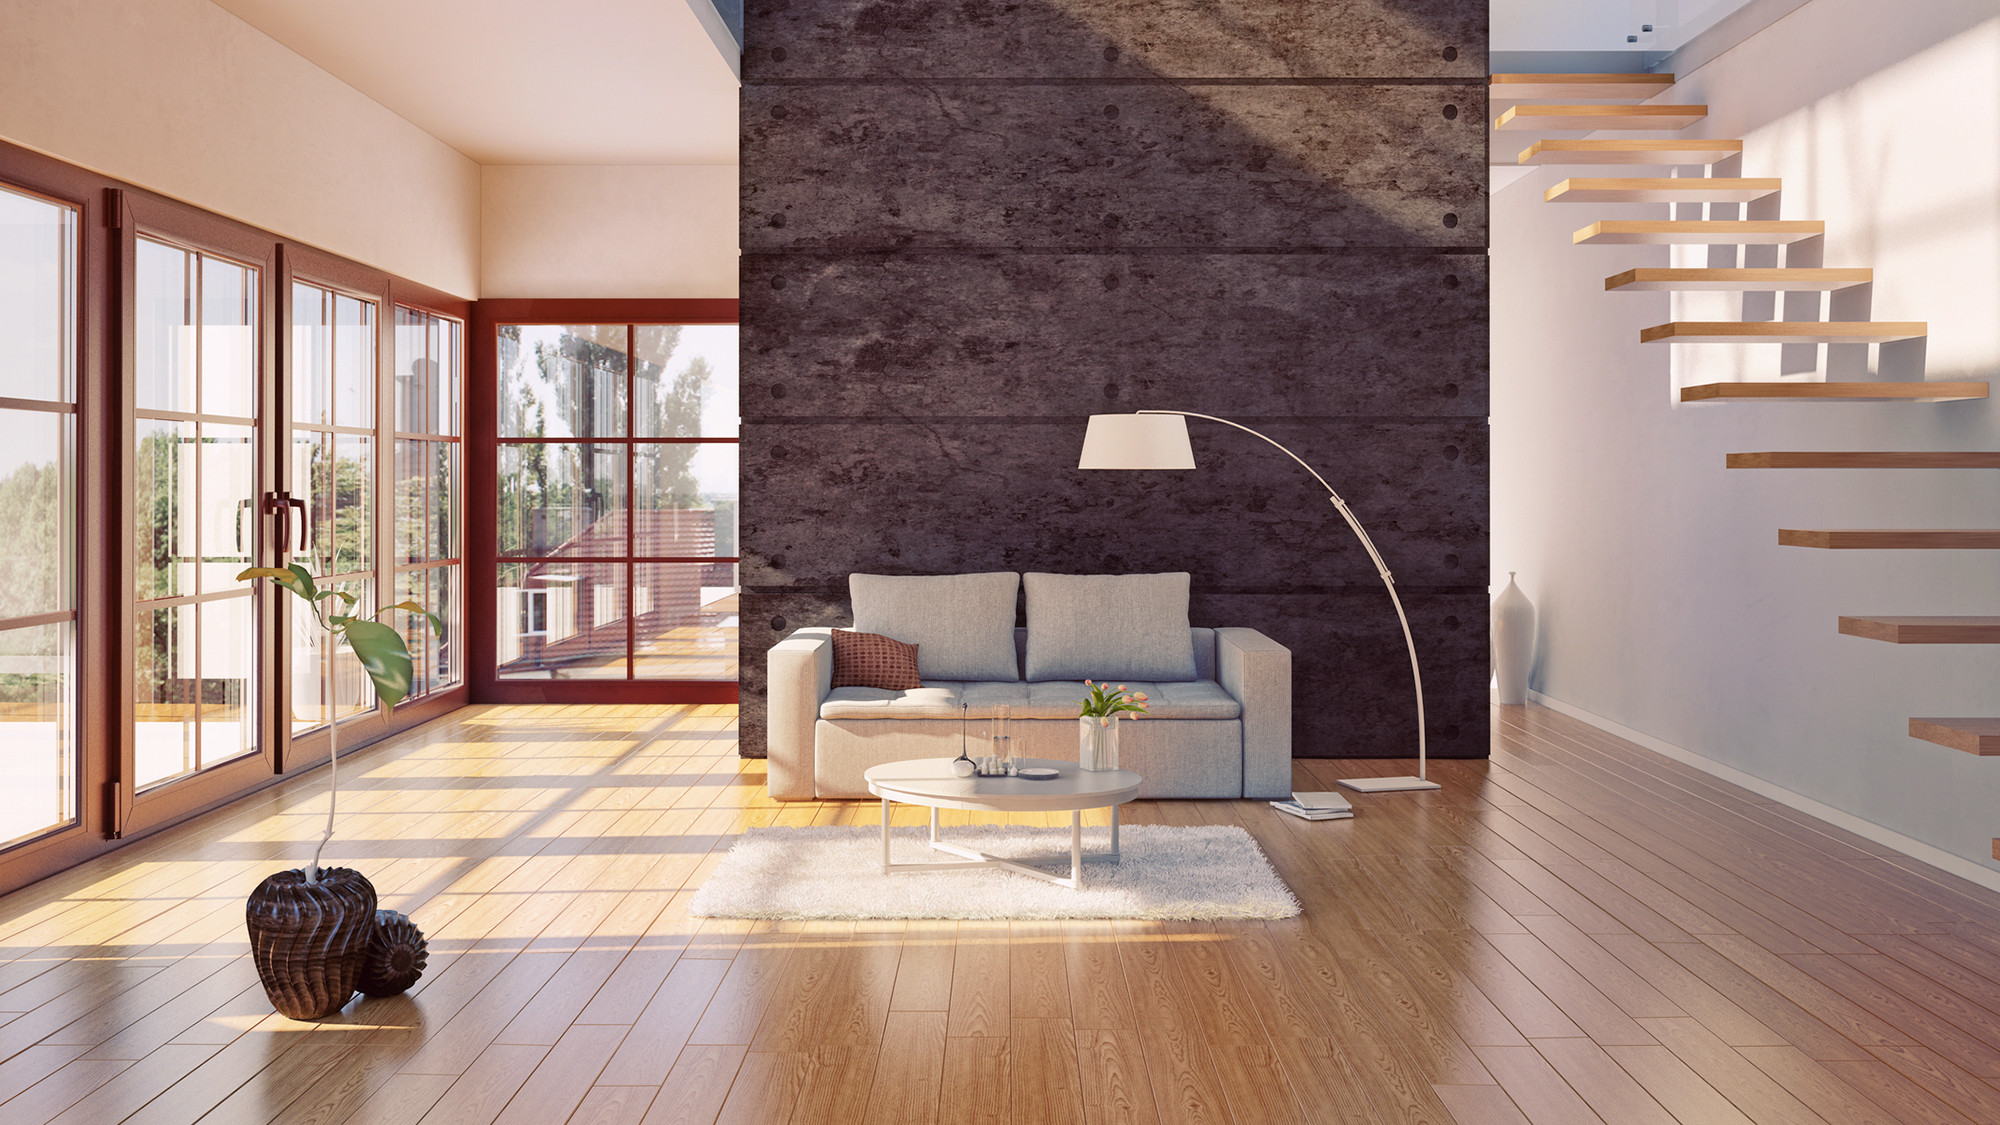 Hardwood Flooring Clearance Ontario Of Do Hardwood Floors Provide the Best Return On Investment Realtor Coma with Hardwood Floors Investment